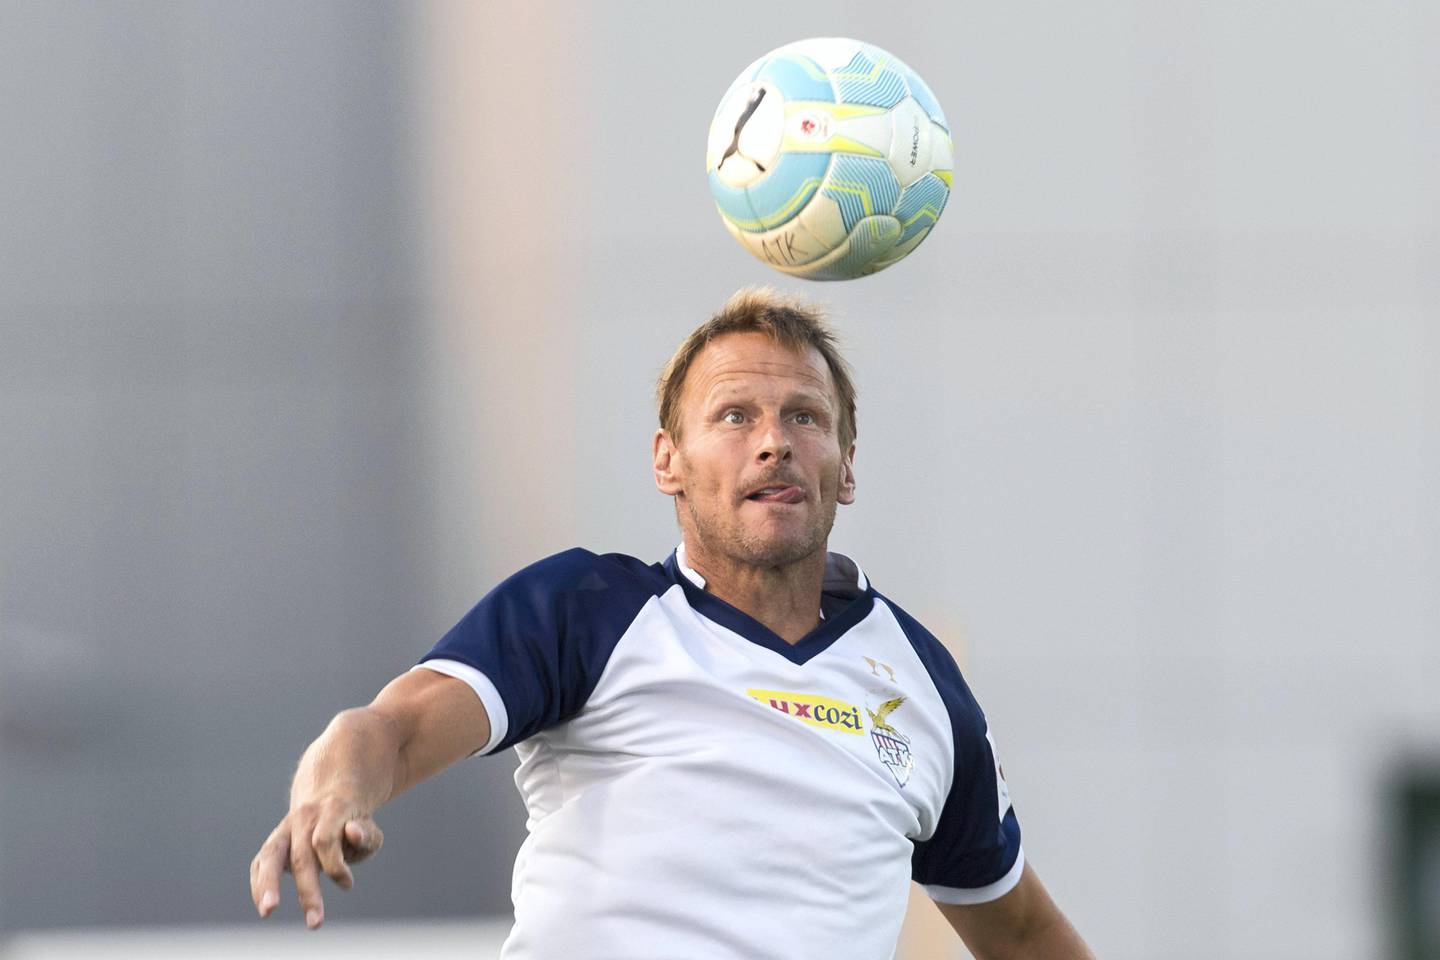 Dubai, United Arab Emirates, November 2, 2017:     Teddy Sheringham coaches members of the Indian football club ATK during a training session at the Nad Al Sheba Sports Complex in the Nad Al Sheba area of Dubai on November 2, 2017. Christopher Pike / The National  Reporter: Paul Radley Section: Sport